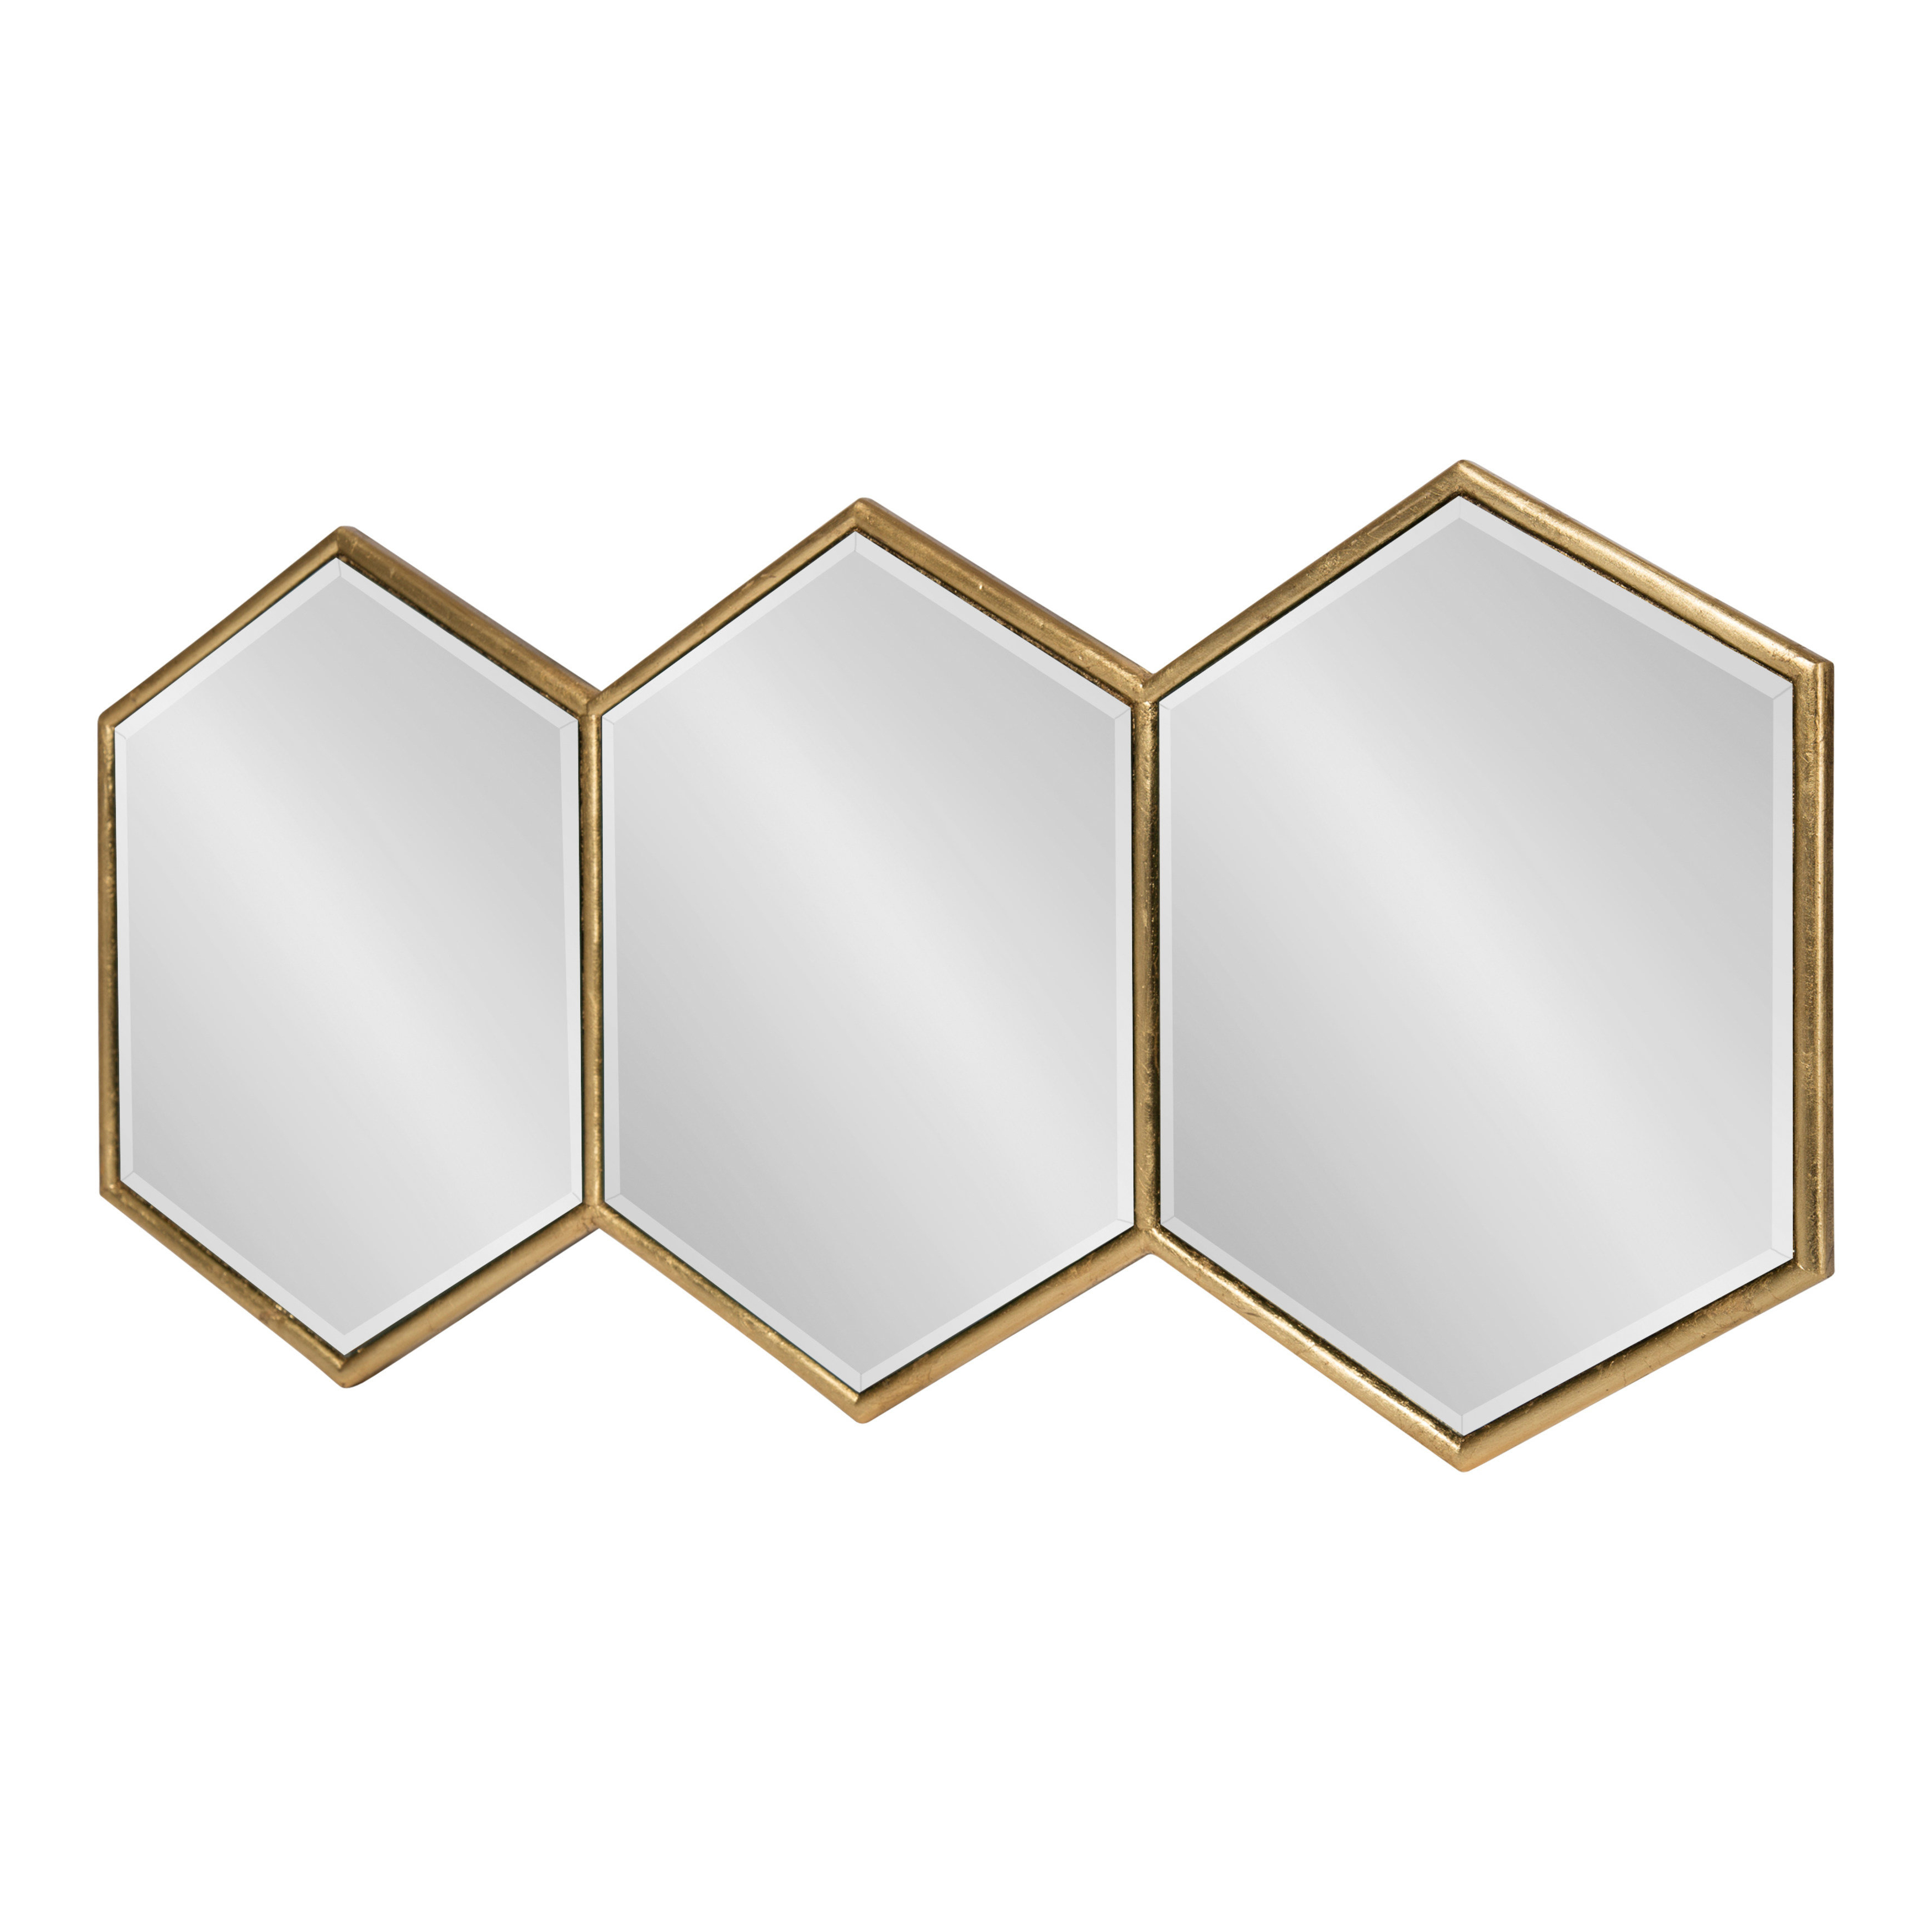 Ganya Hexagon Trio Wall Mirror Intended For Most Recently Released Hexagon Wall Mirrors (View 3 of 20)